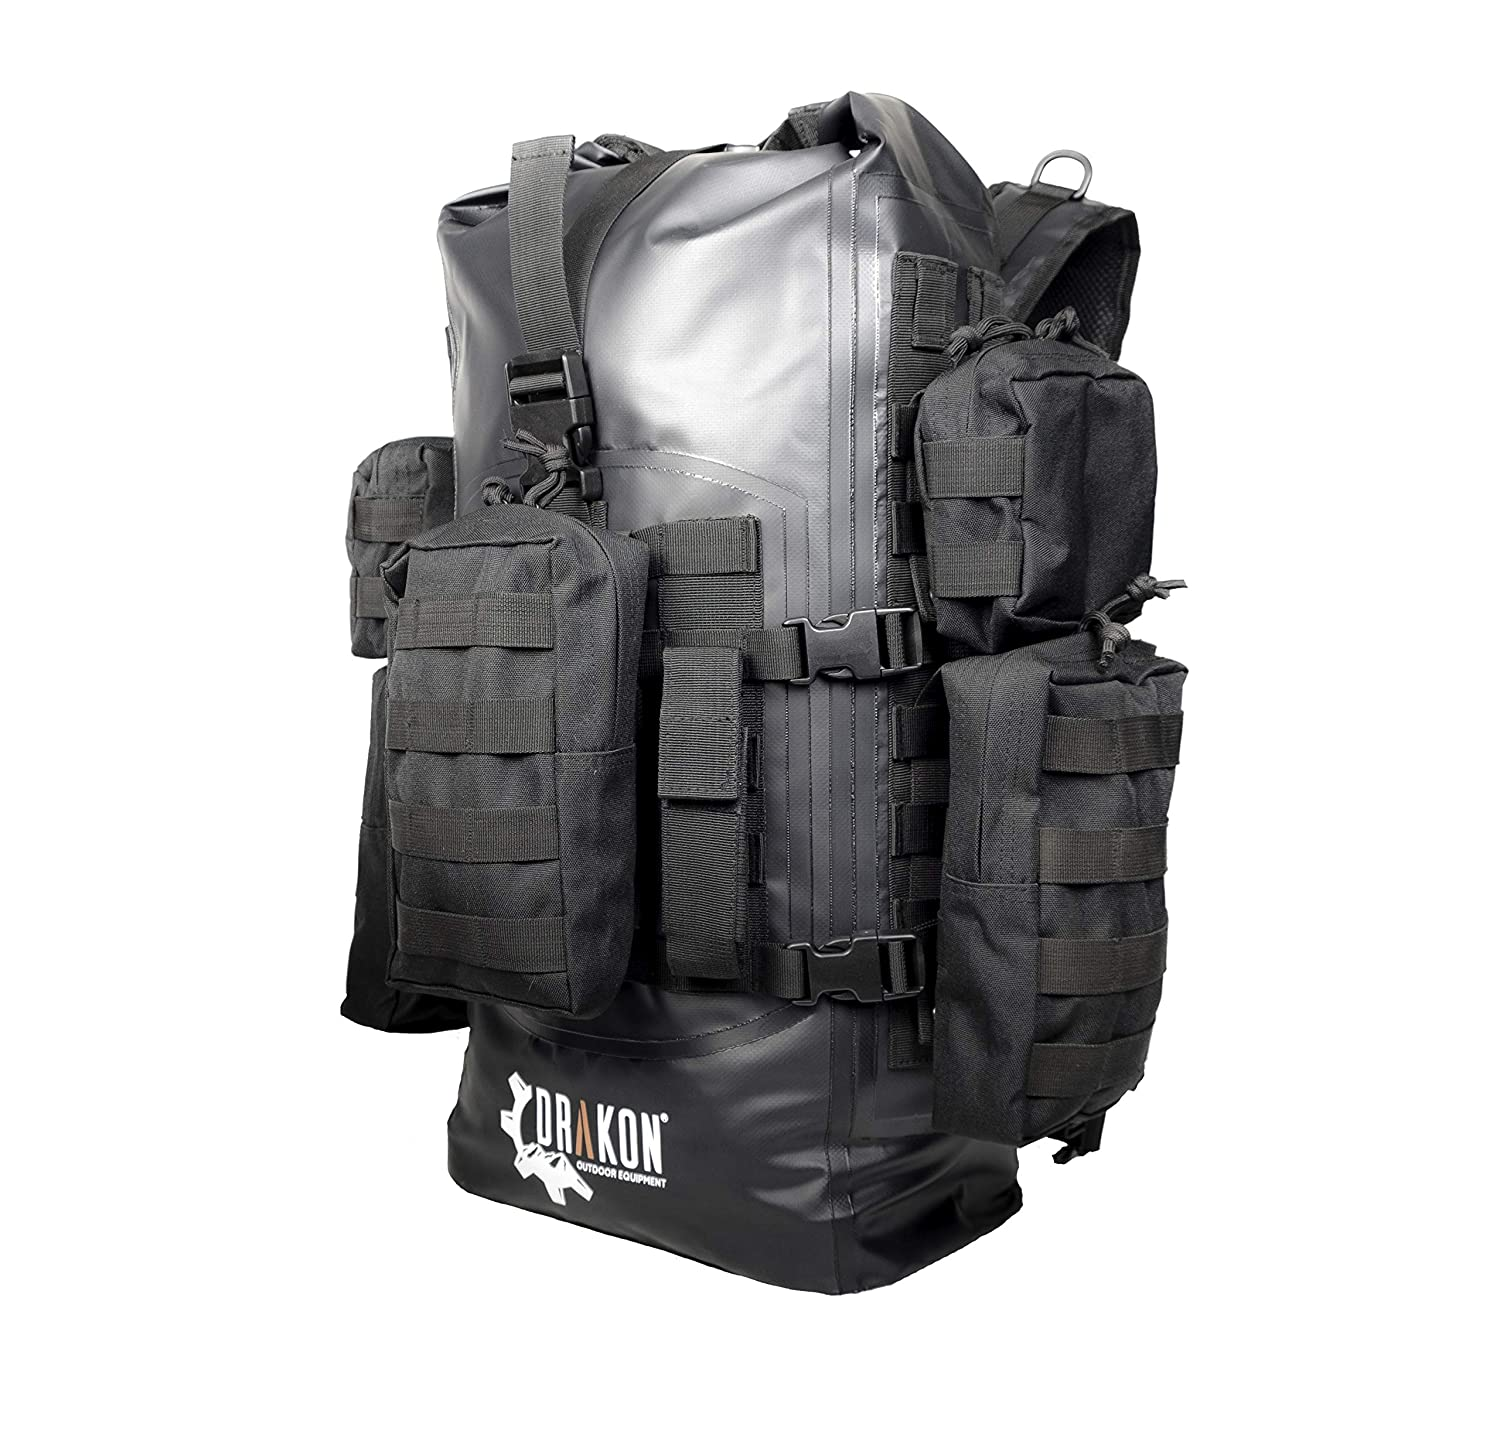 25a4e51f0ddd Drakon Outdoors 40L Waterproof Dry Bag Survival Backpack - Roll Top Go-Bag  Perfect for Hunting